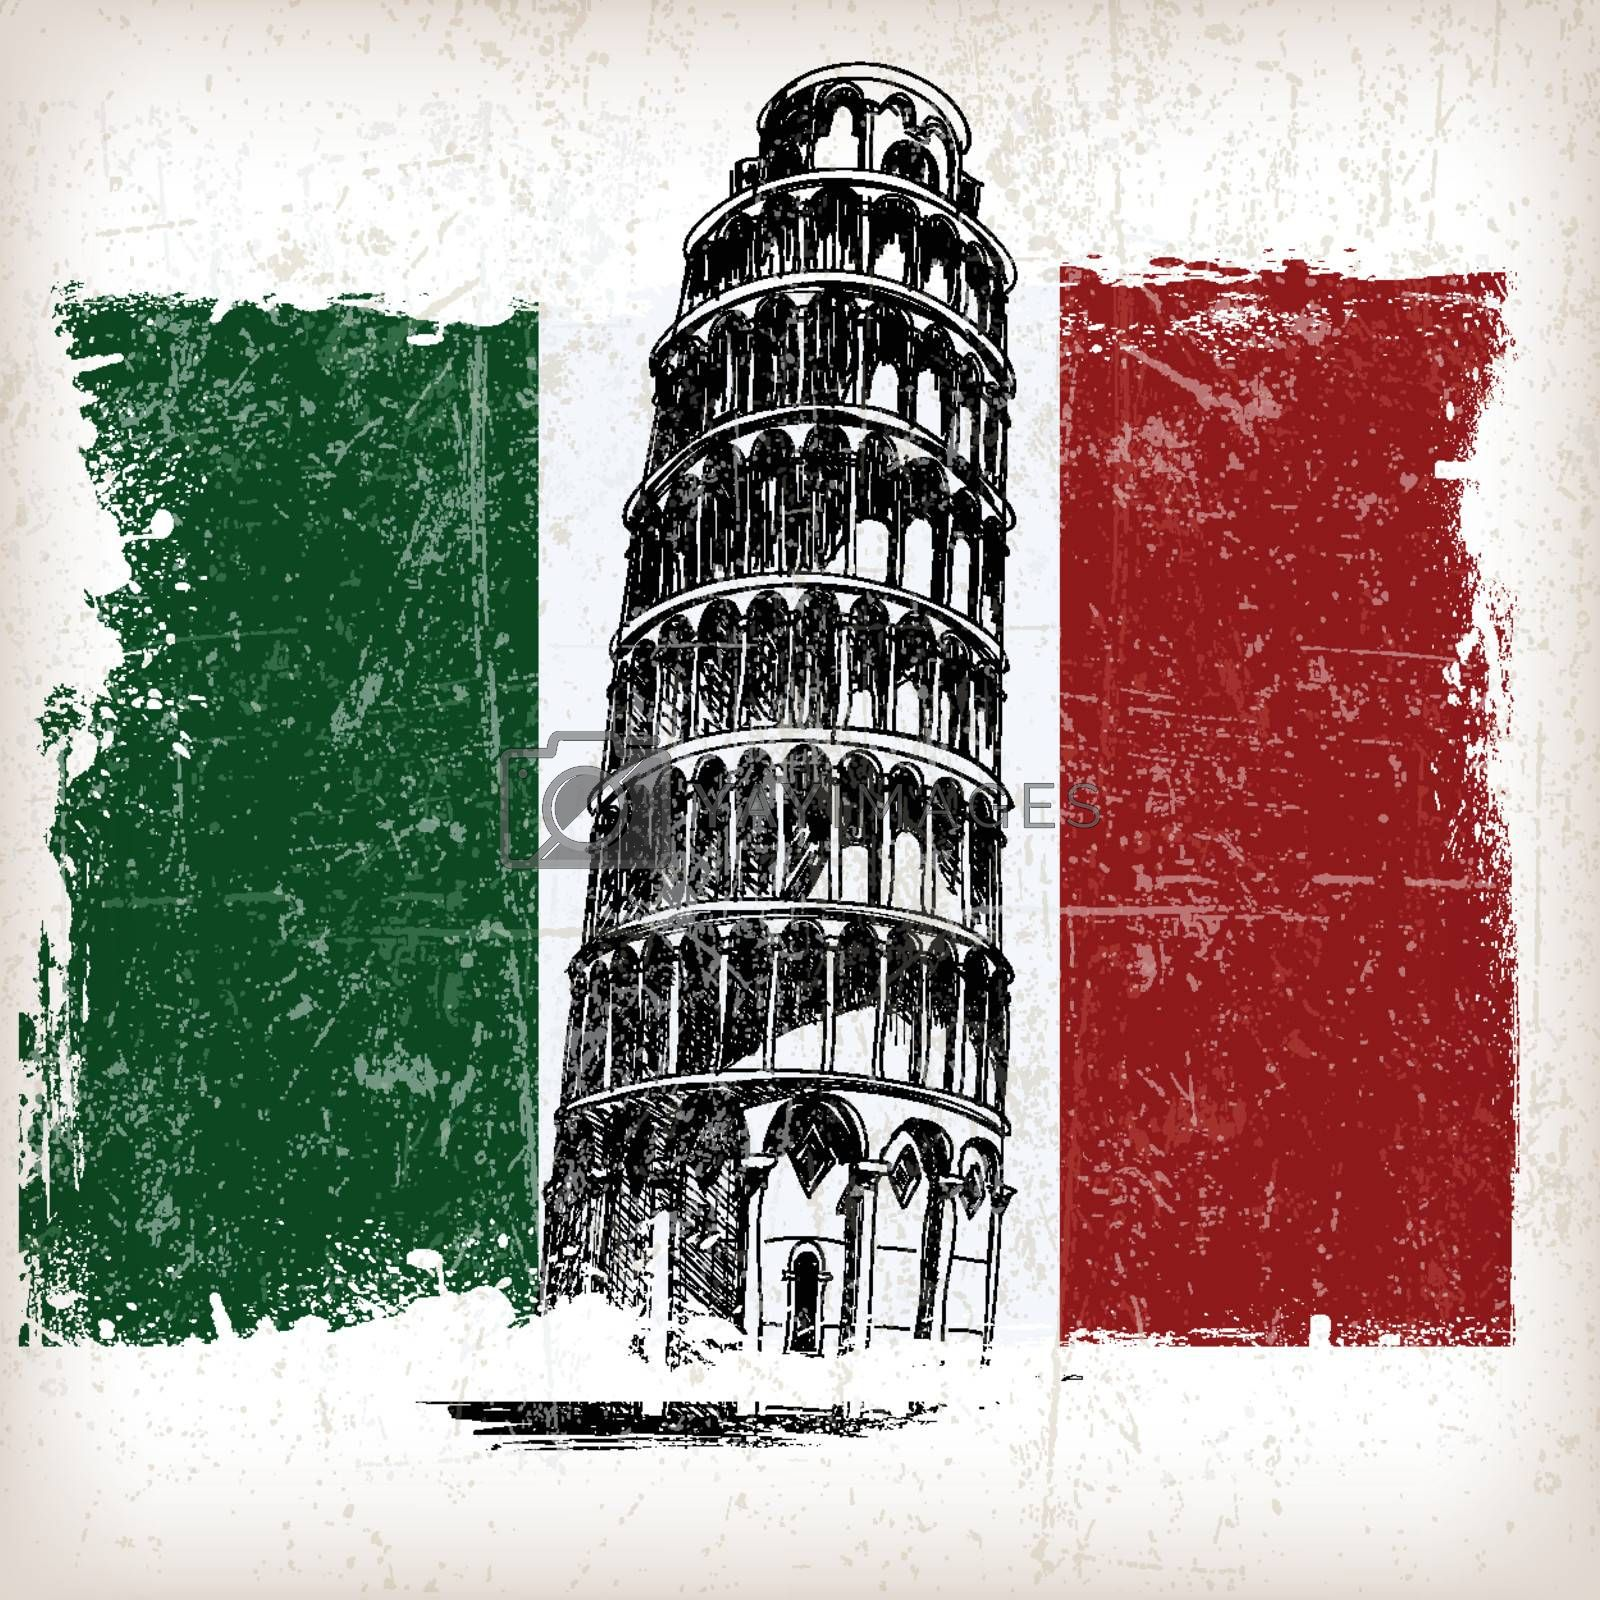 Leaning Tower of Pisa on Italian flag with grunge effect